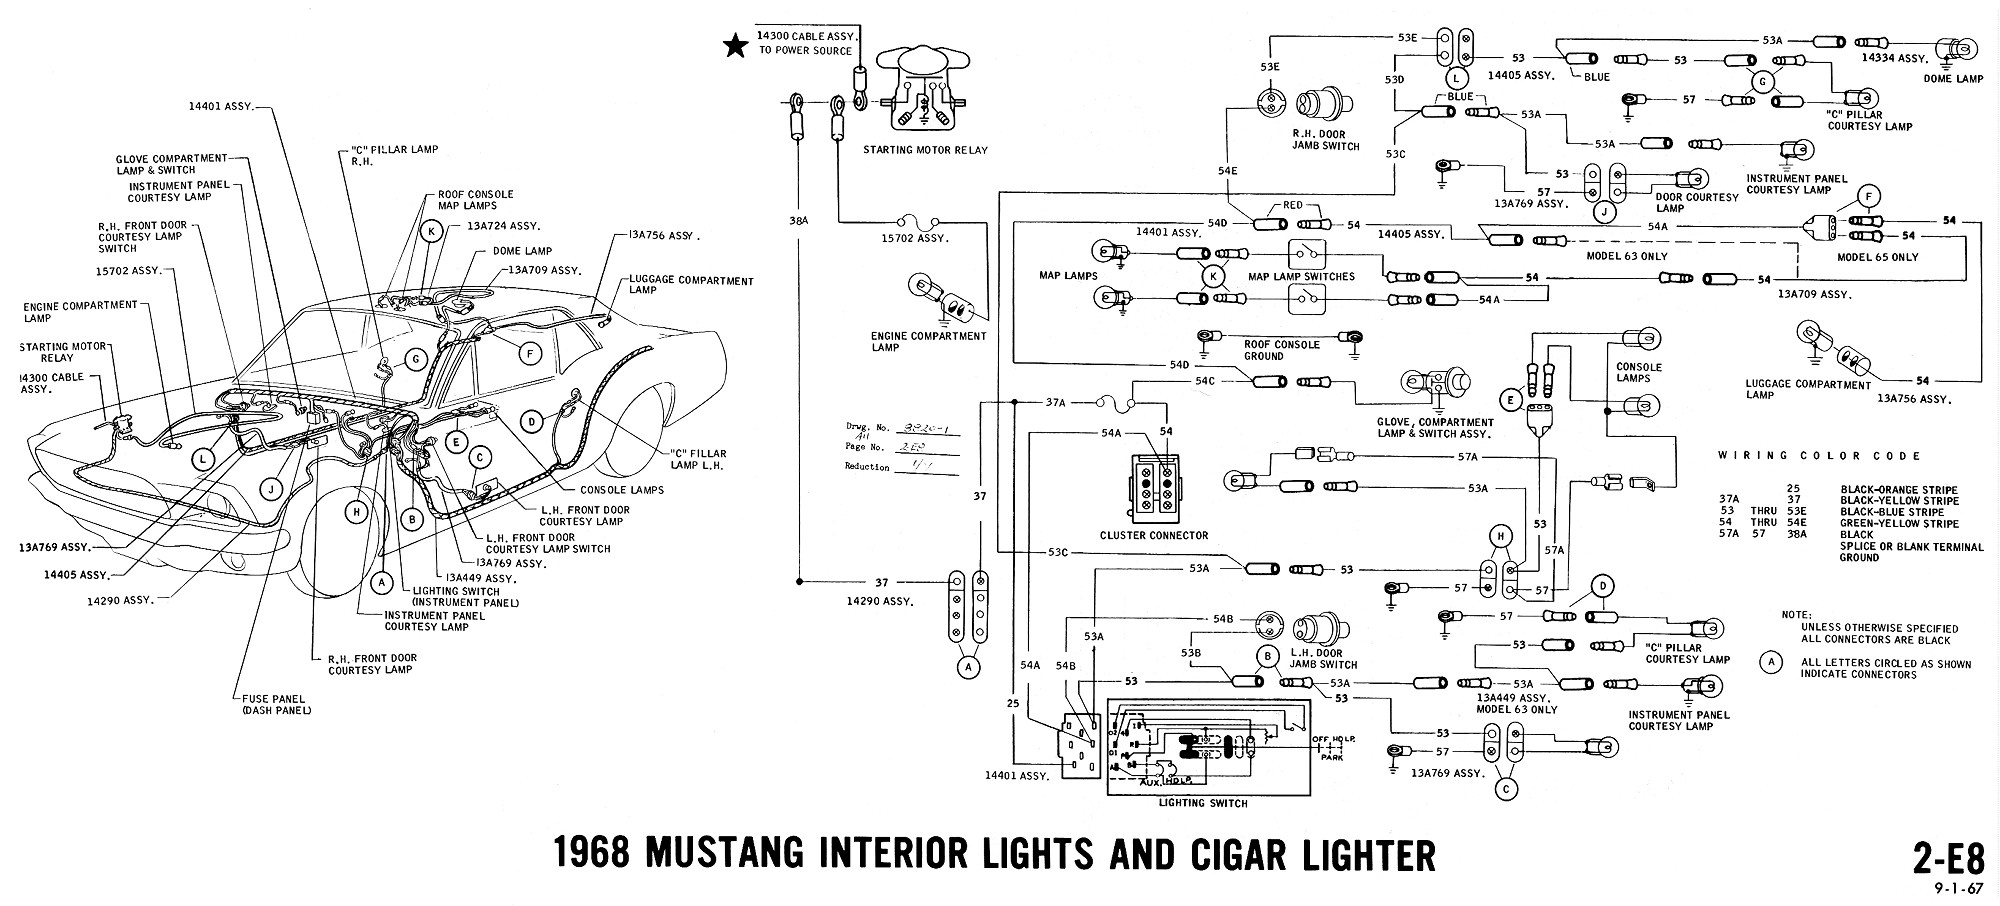 1968 mustang wiring diagram interior lights cigar lighter 1968 mustang wiring diagrams and vacuum schematics average joe 1968 mustang ignition wiring diagram at n-0.co